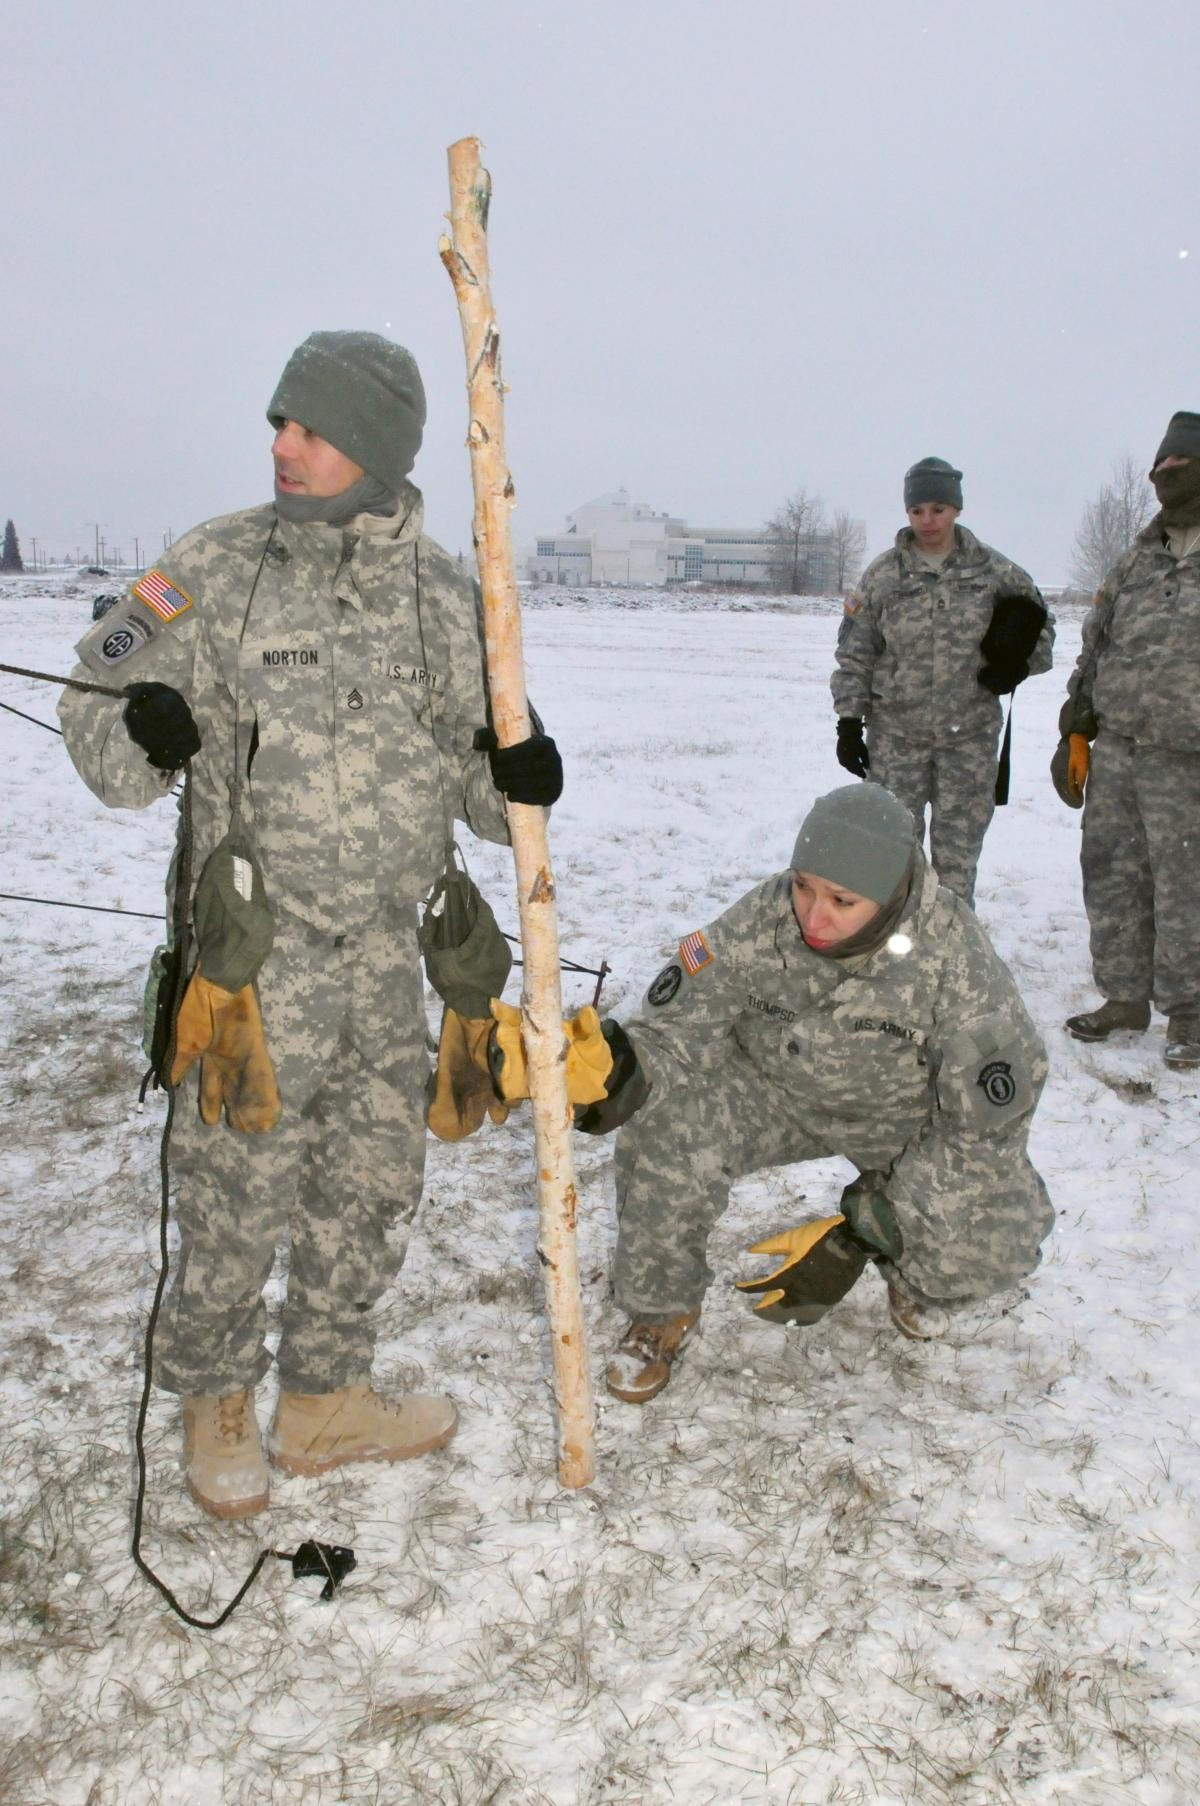 ... ORIGINAL Soldiers with 472nd Military Police ... & Fort Wainwright military police prepare for Arctic winter ...